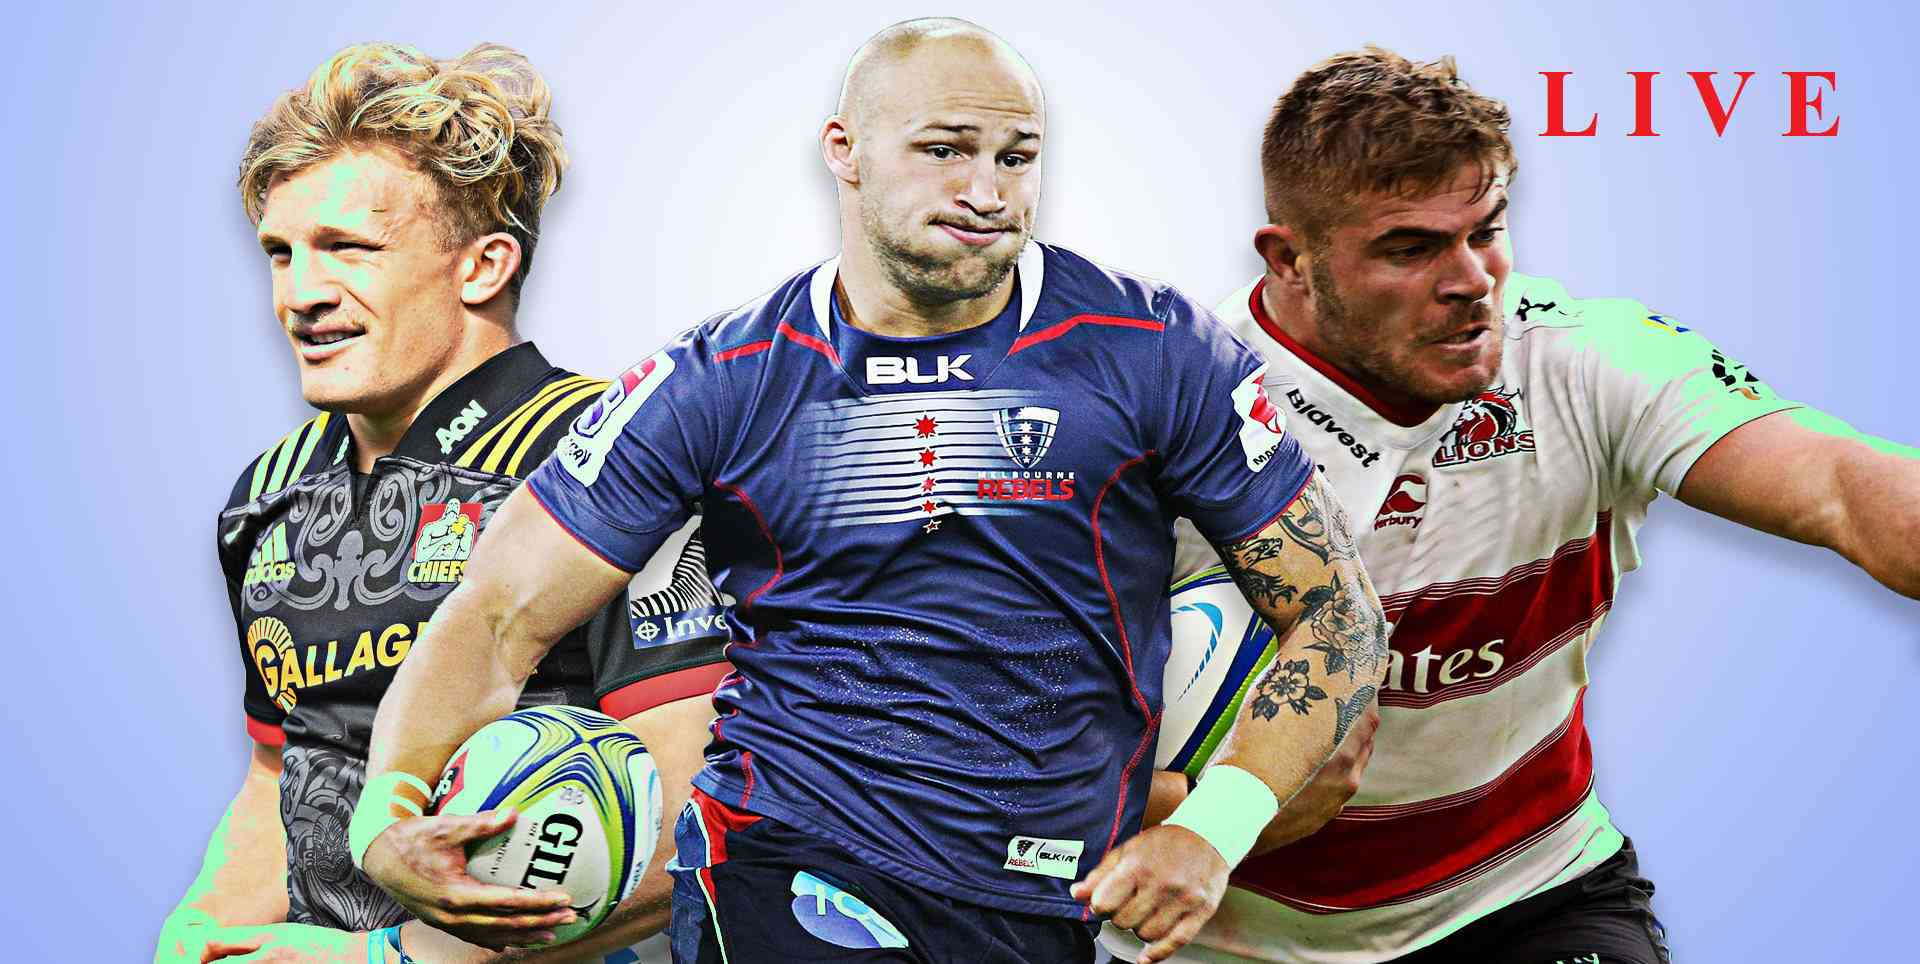 Watch Cheetahs VS Lions Super Rugby Live